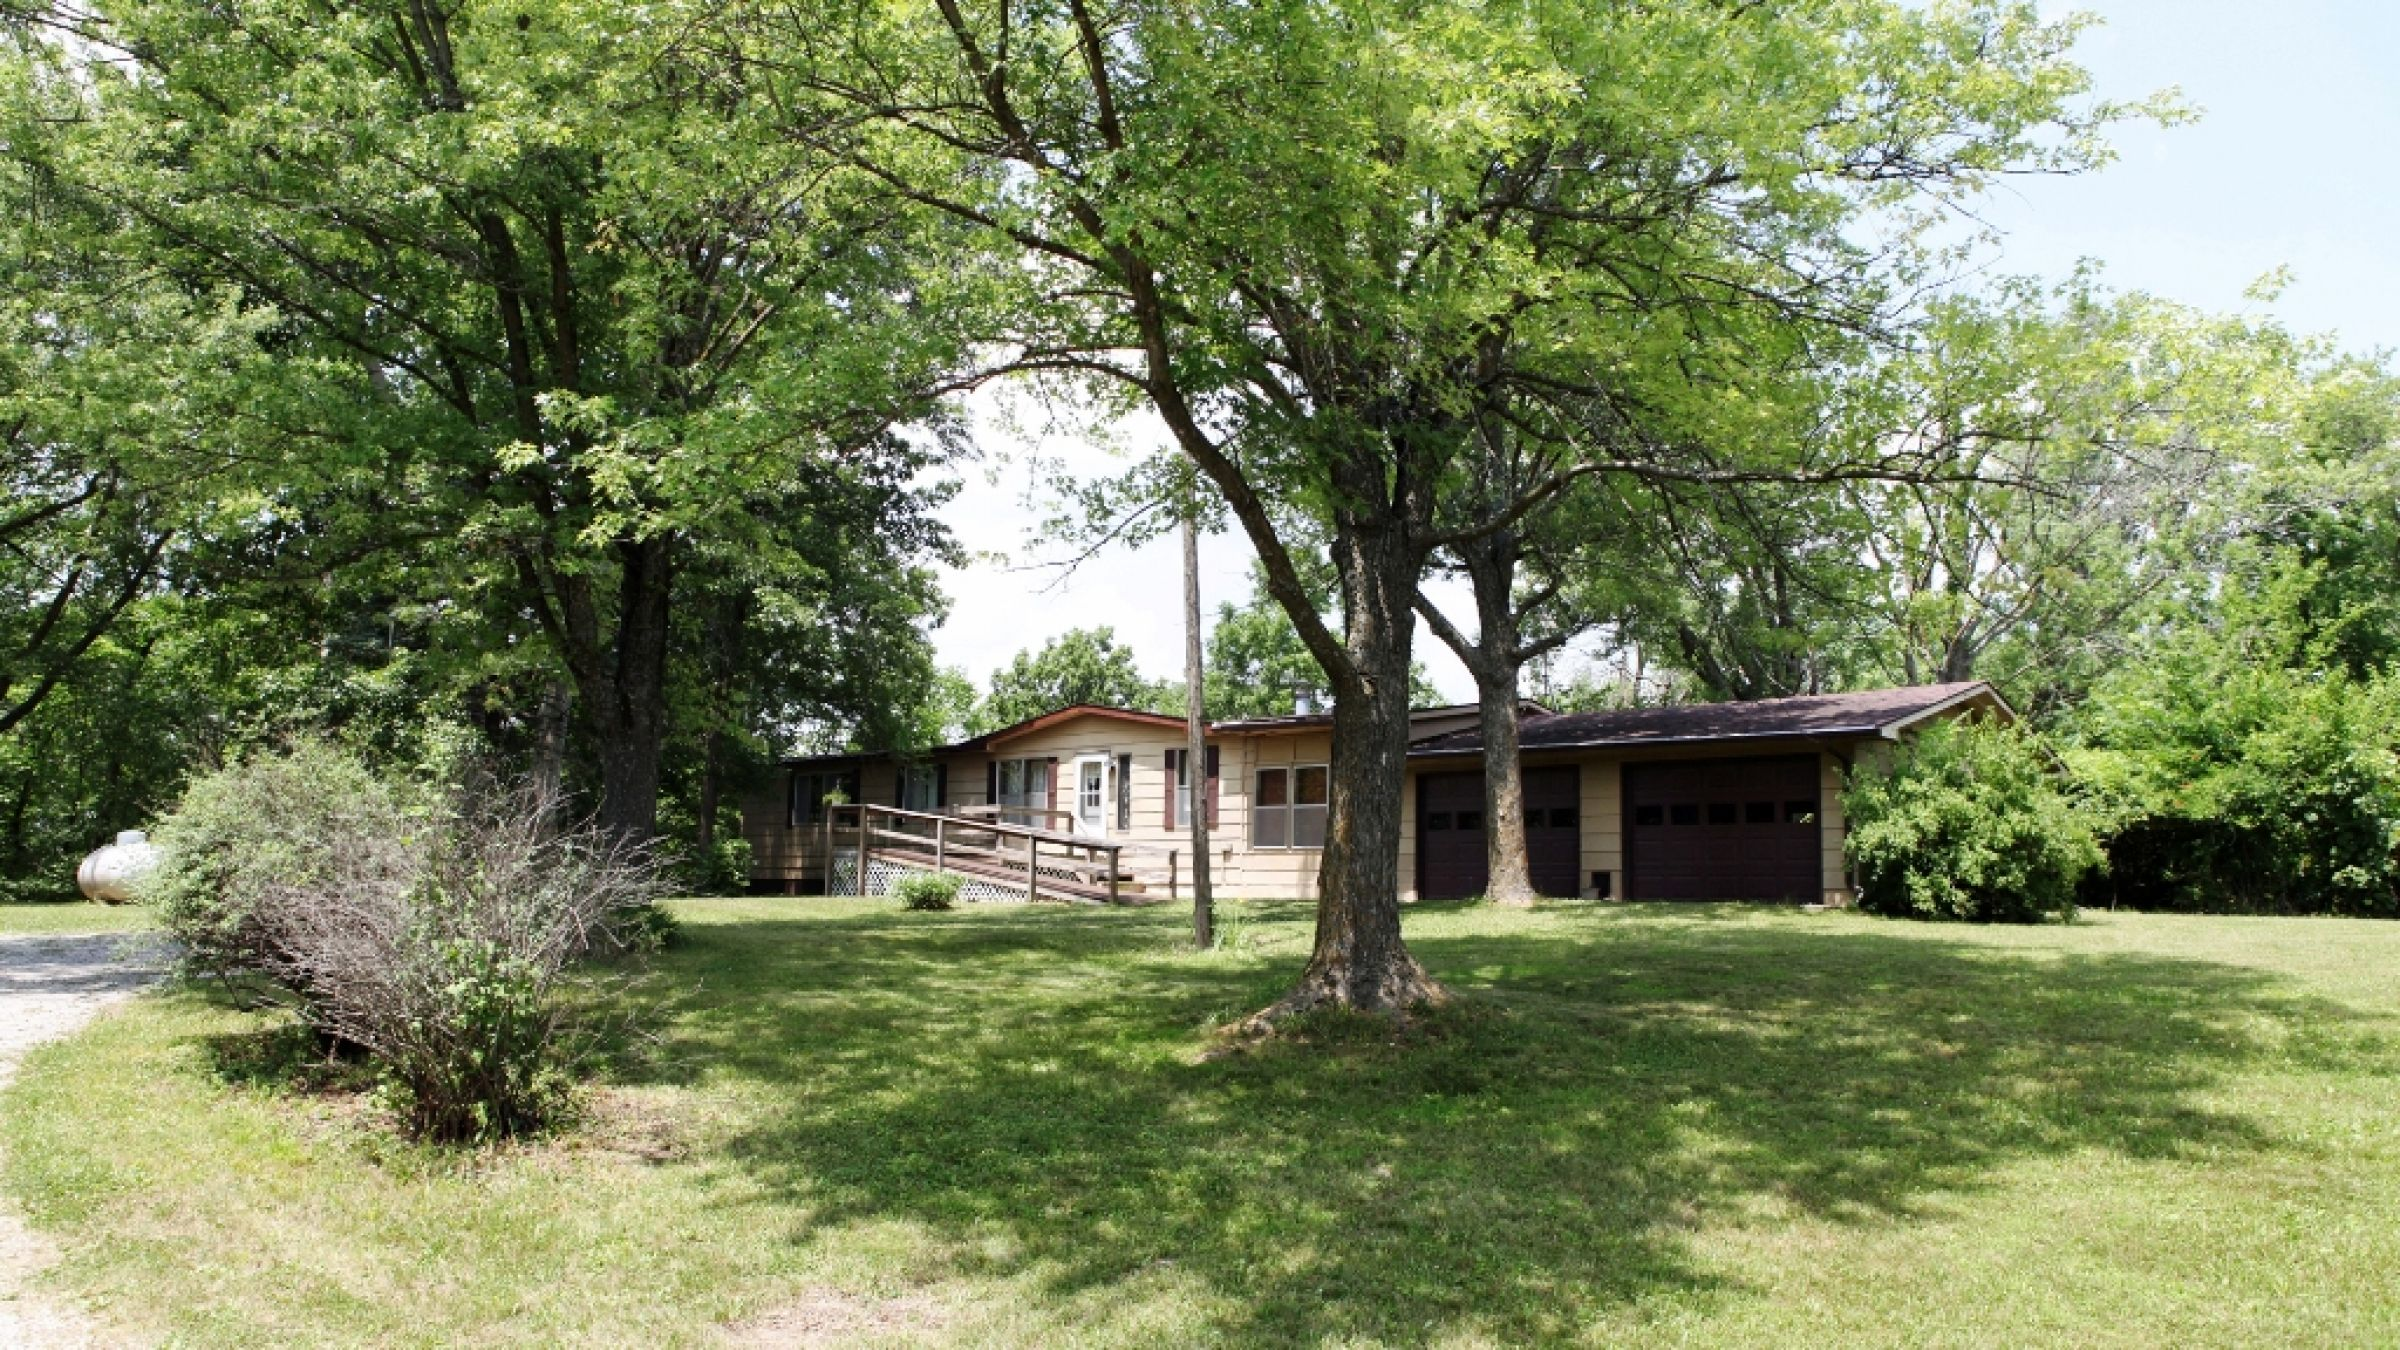 residential-lucas-county-iowa-2-acres-listing-number-15392-8-2021-03-03-215639.JPG